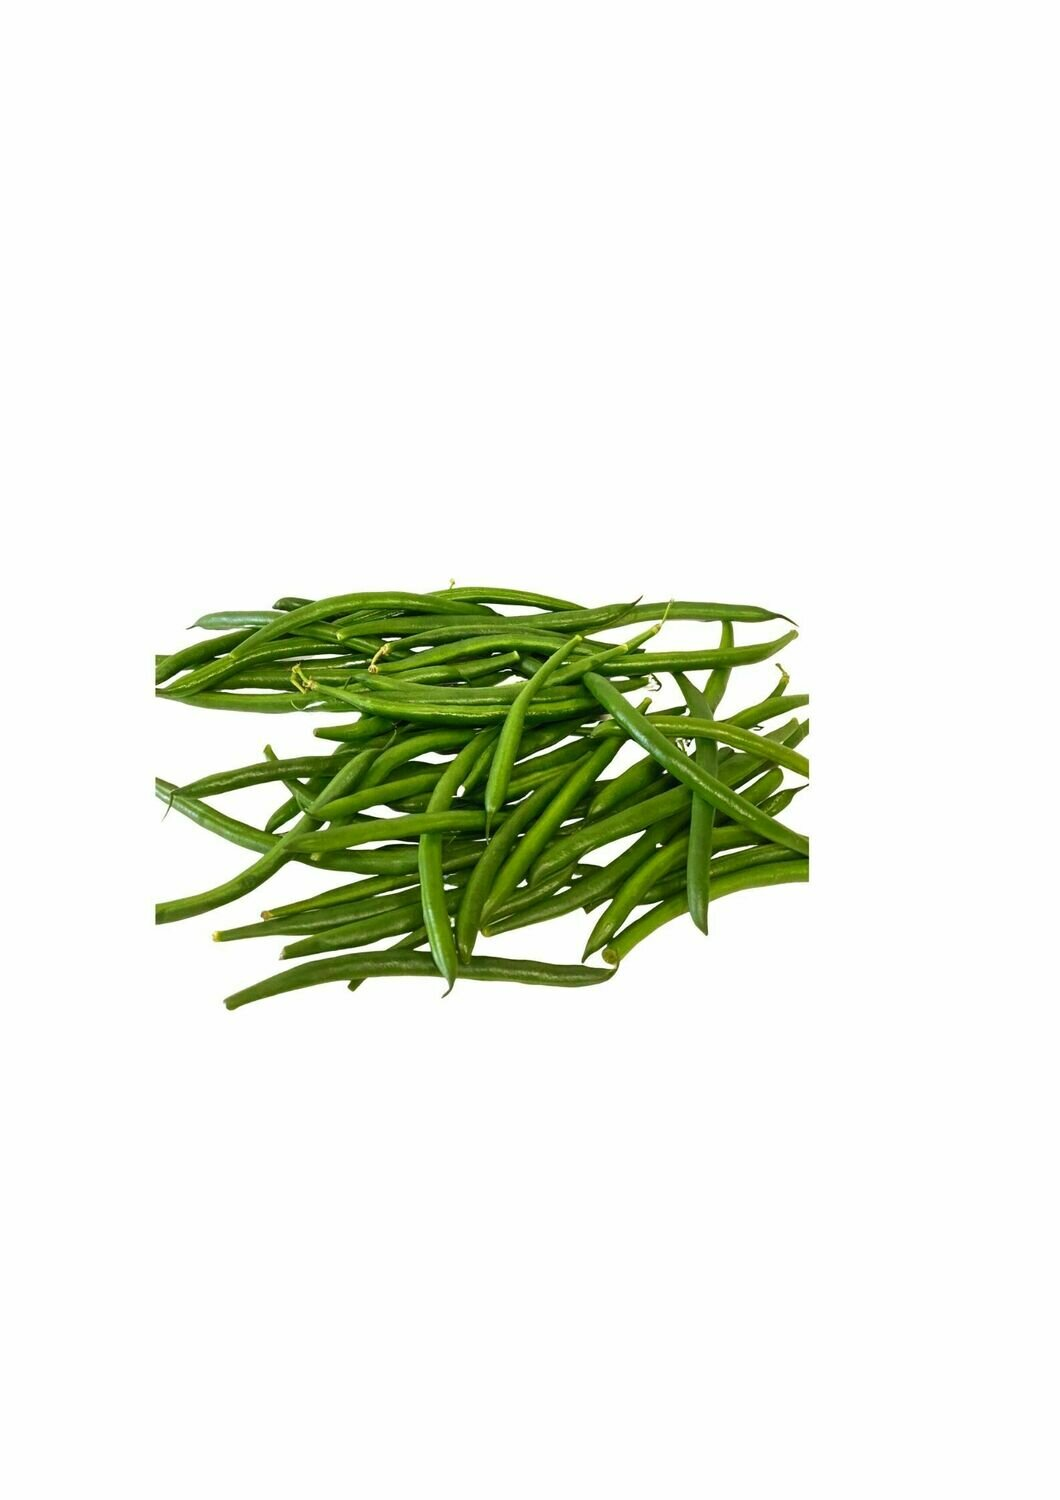 BEANS GREEN HANDPICKED - 250gm PACK